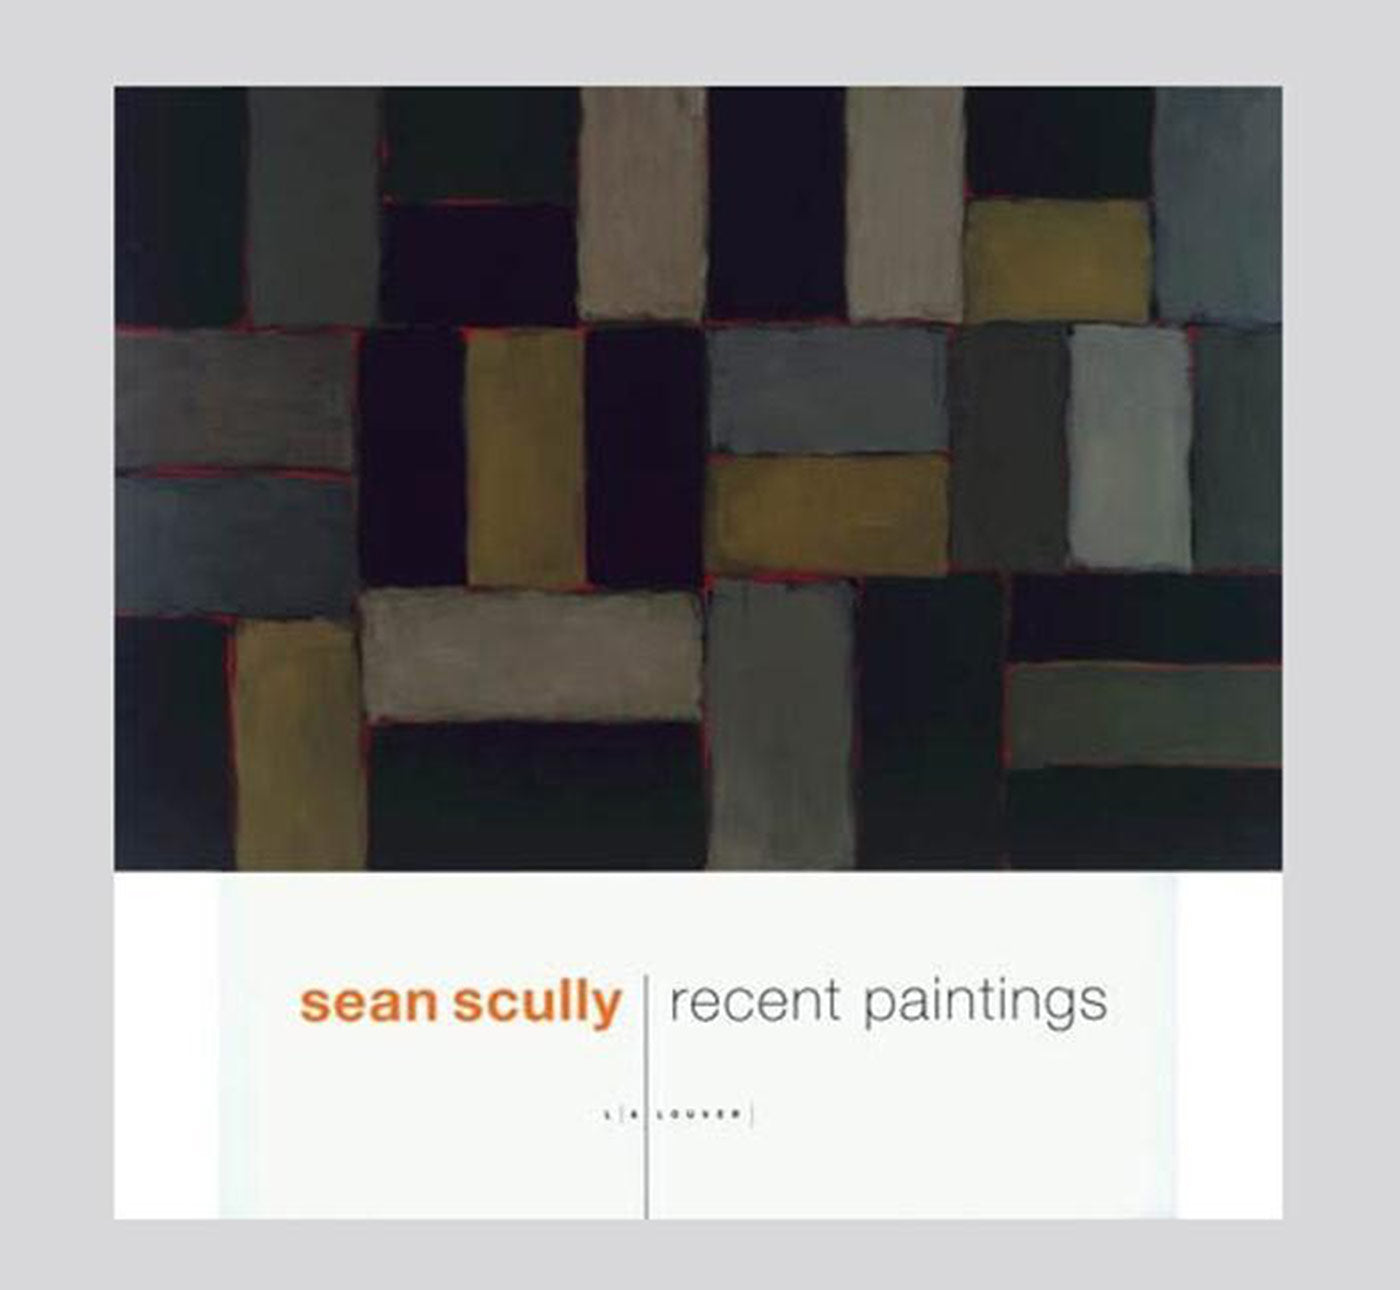 Sean Scully: Recent Paintings